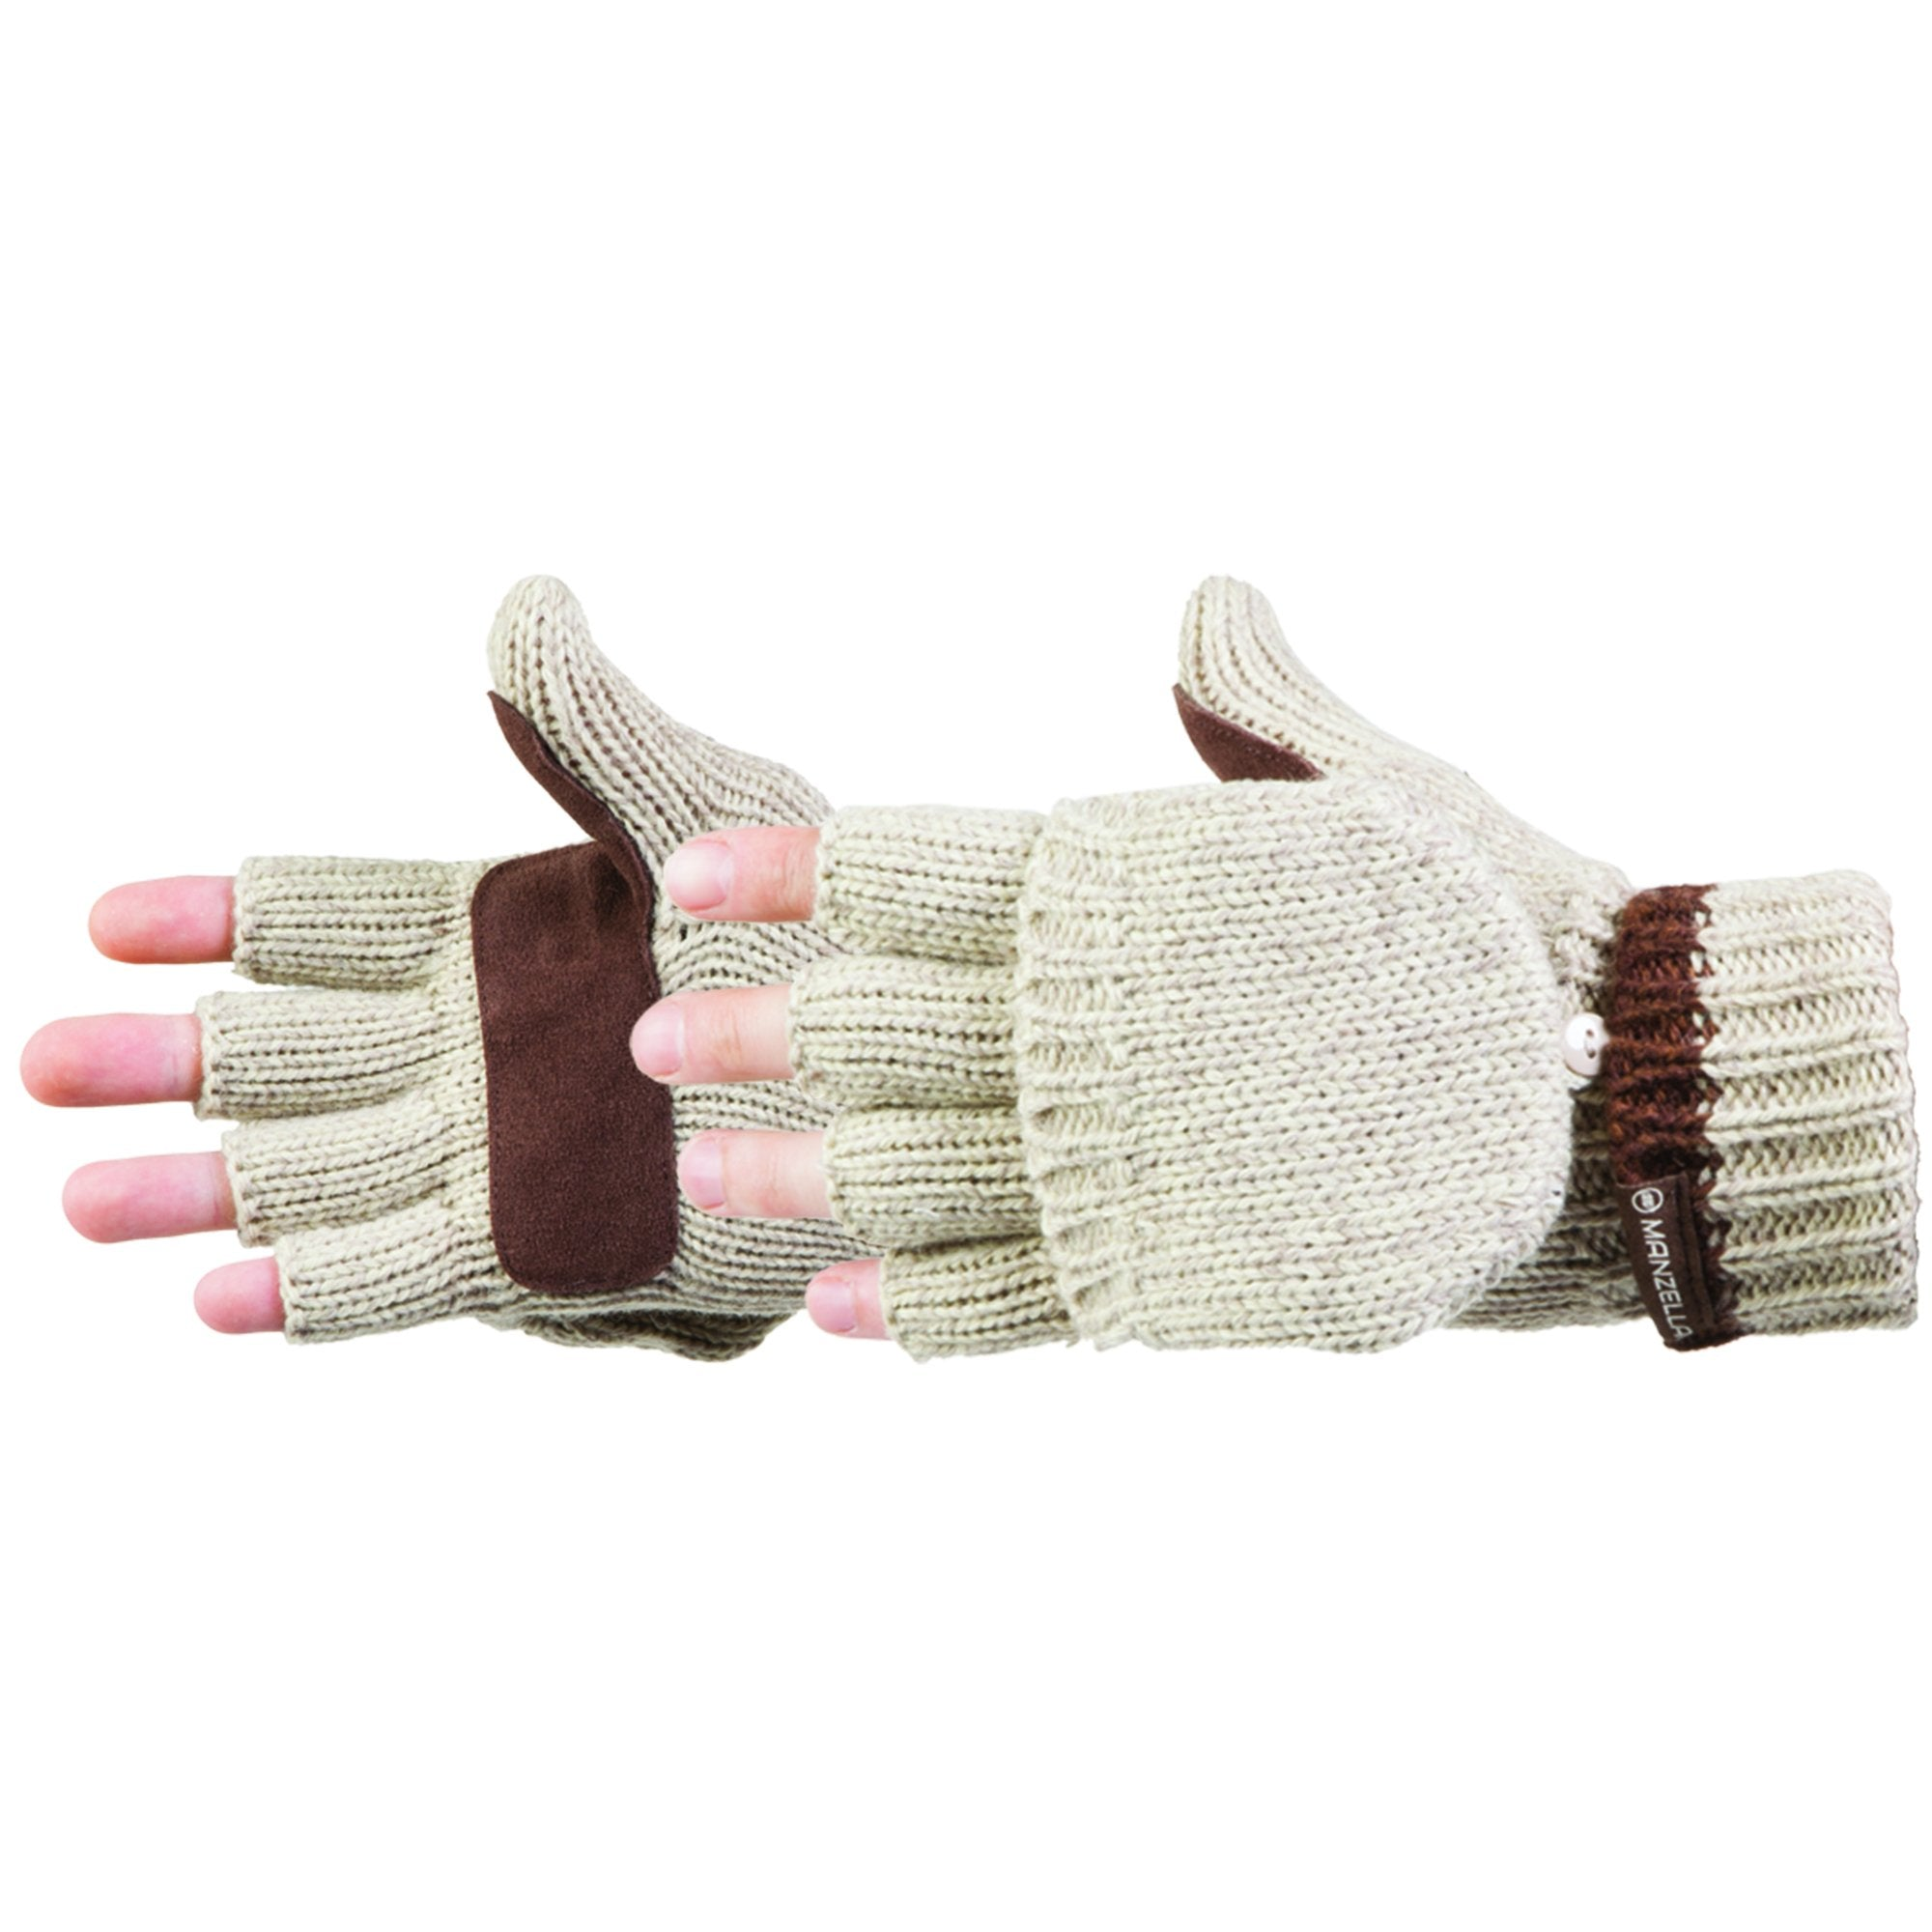 Manzella Men's Ragwool Knit Flip Top Glove